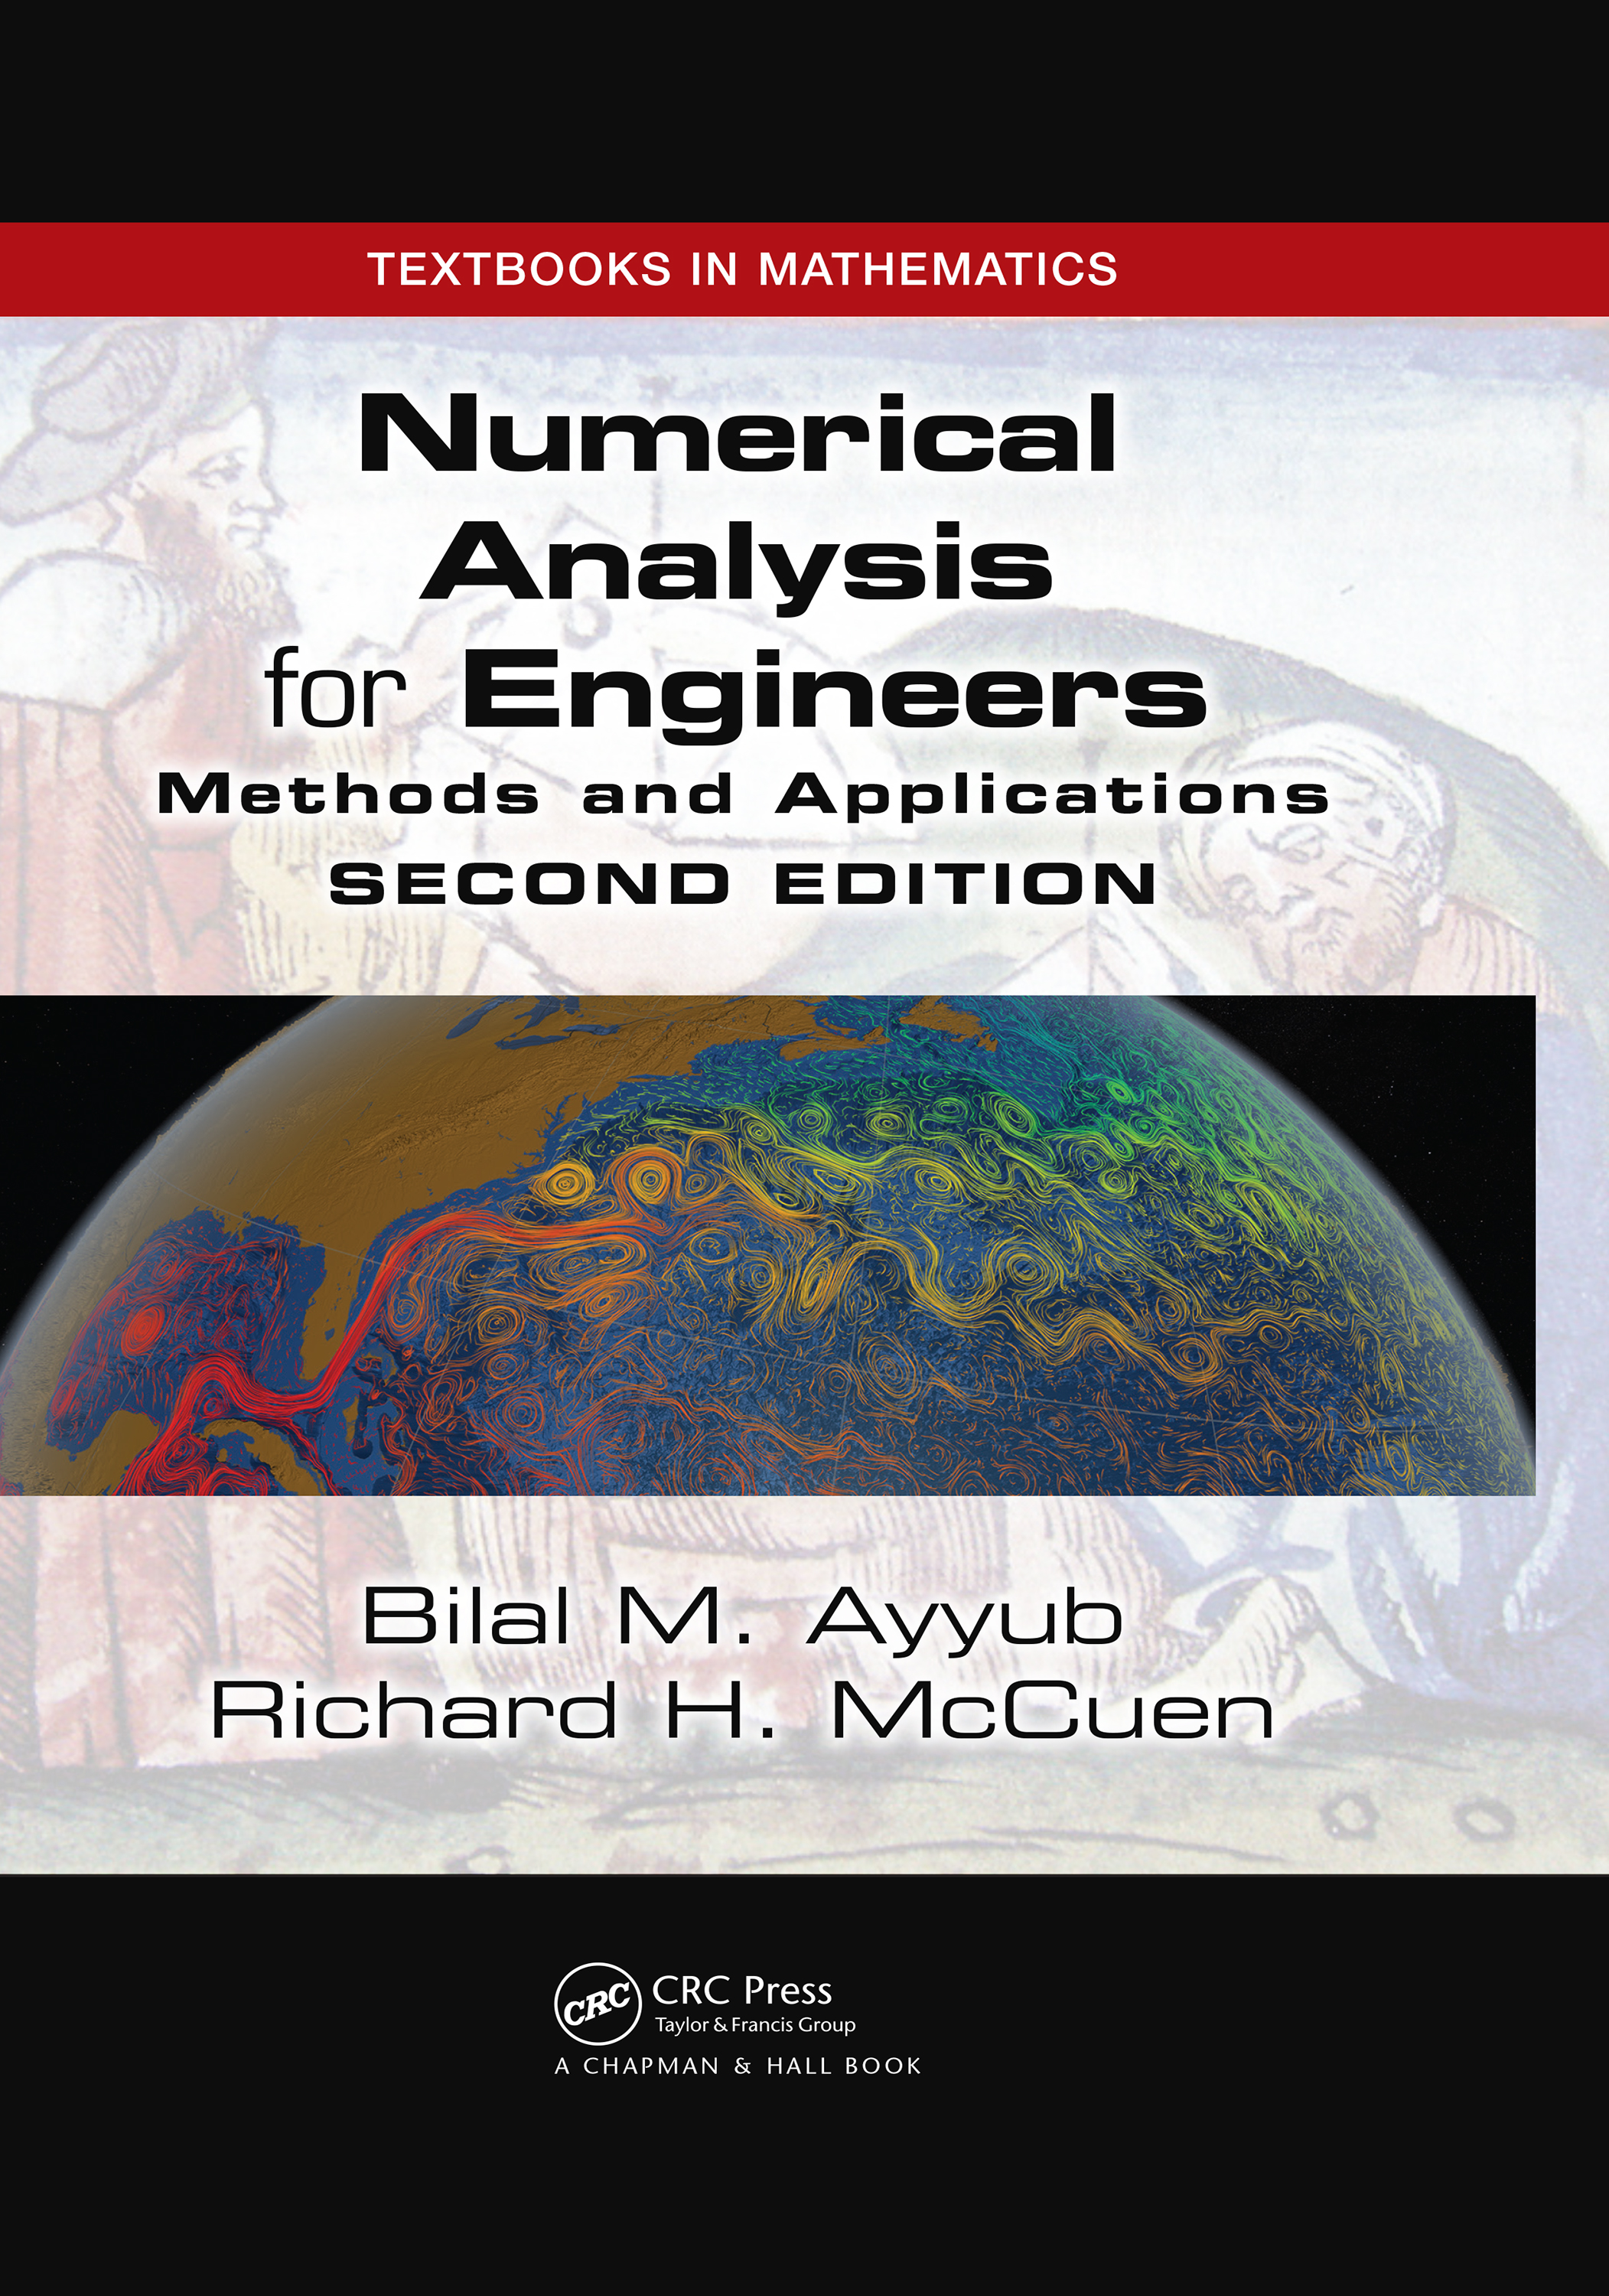 Numerical Analysis for Engineers: Methods and Applications, Second Edition book cover